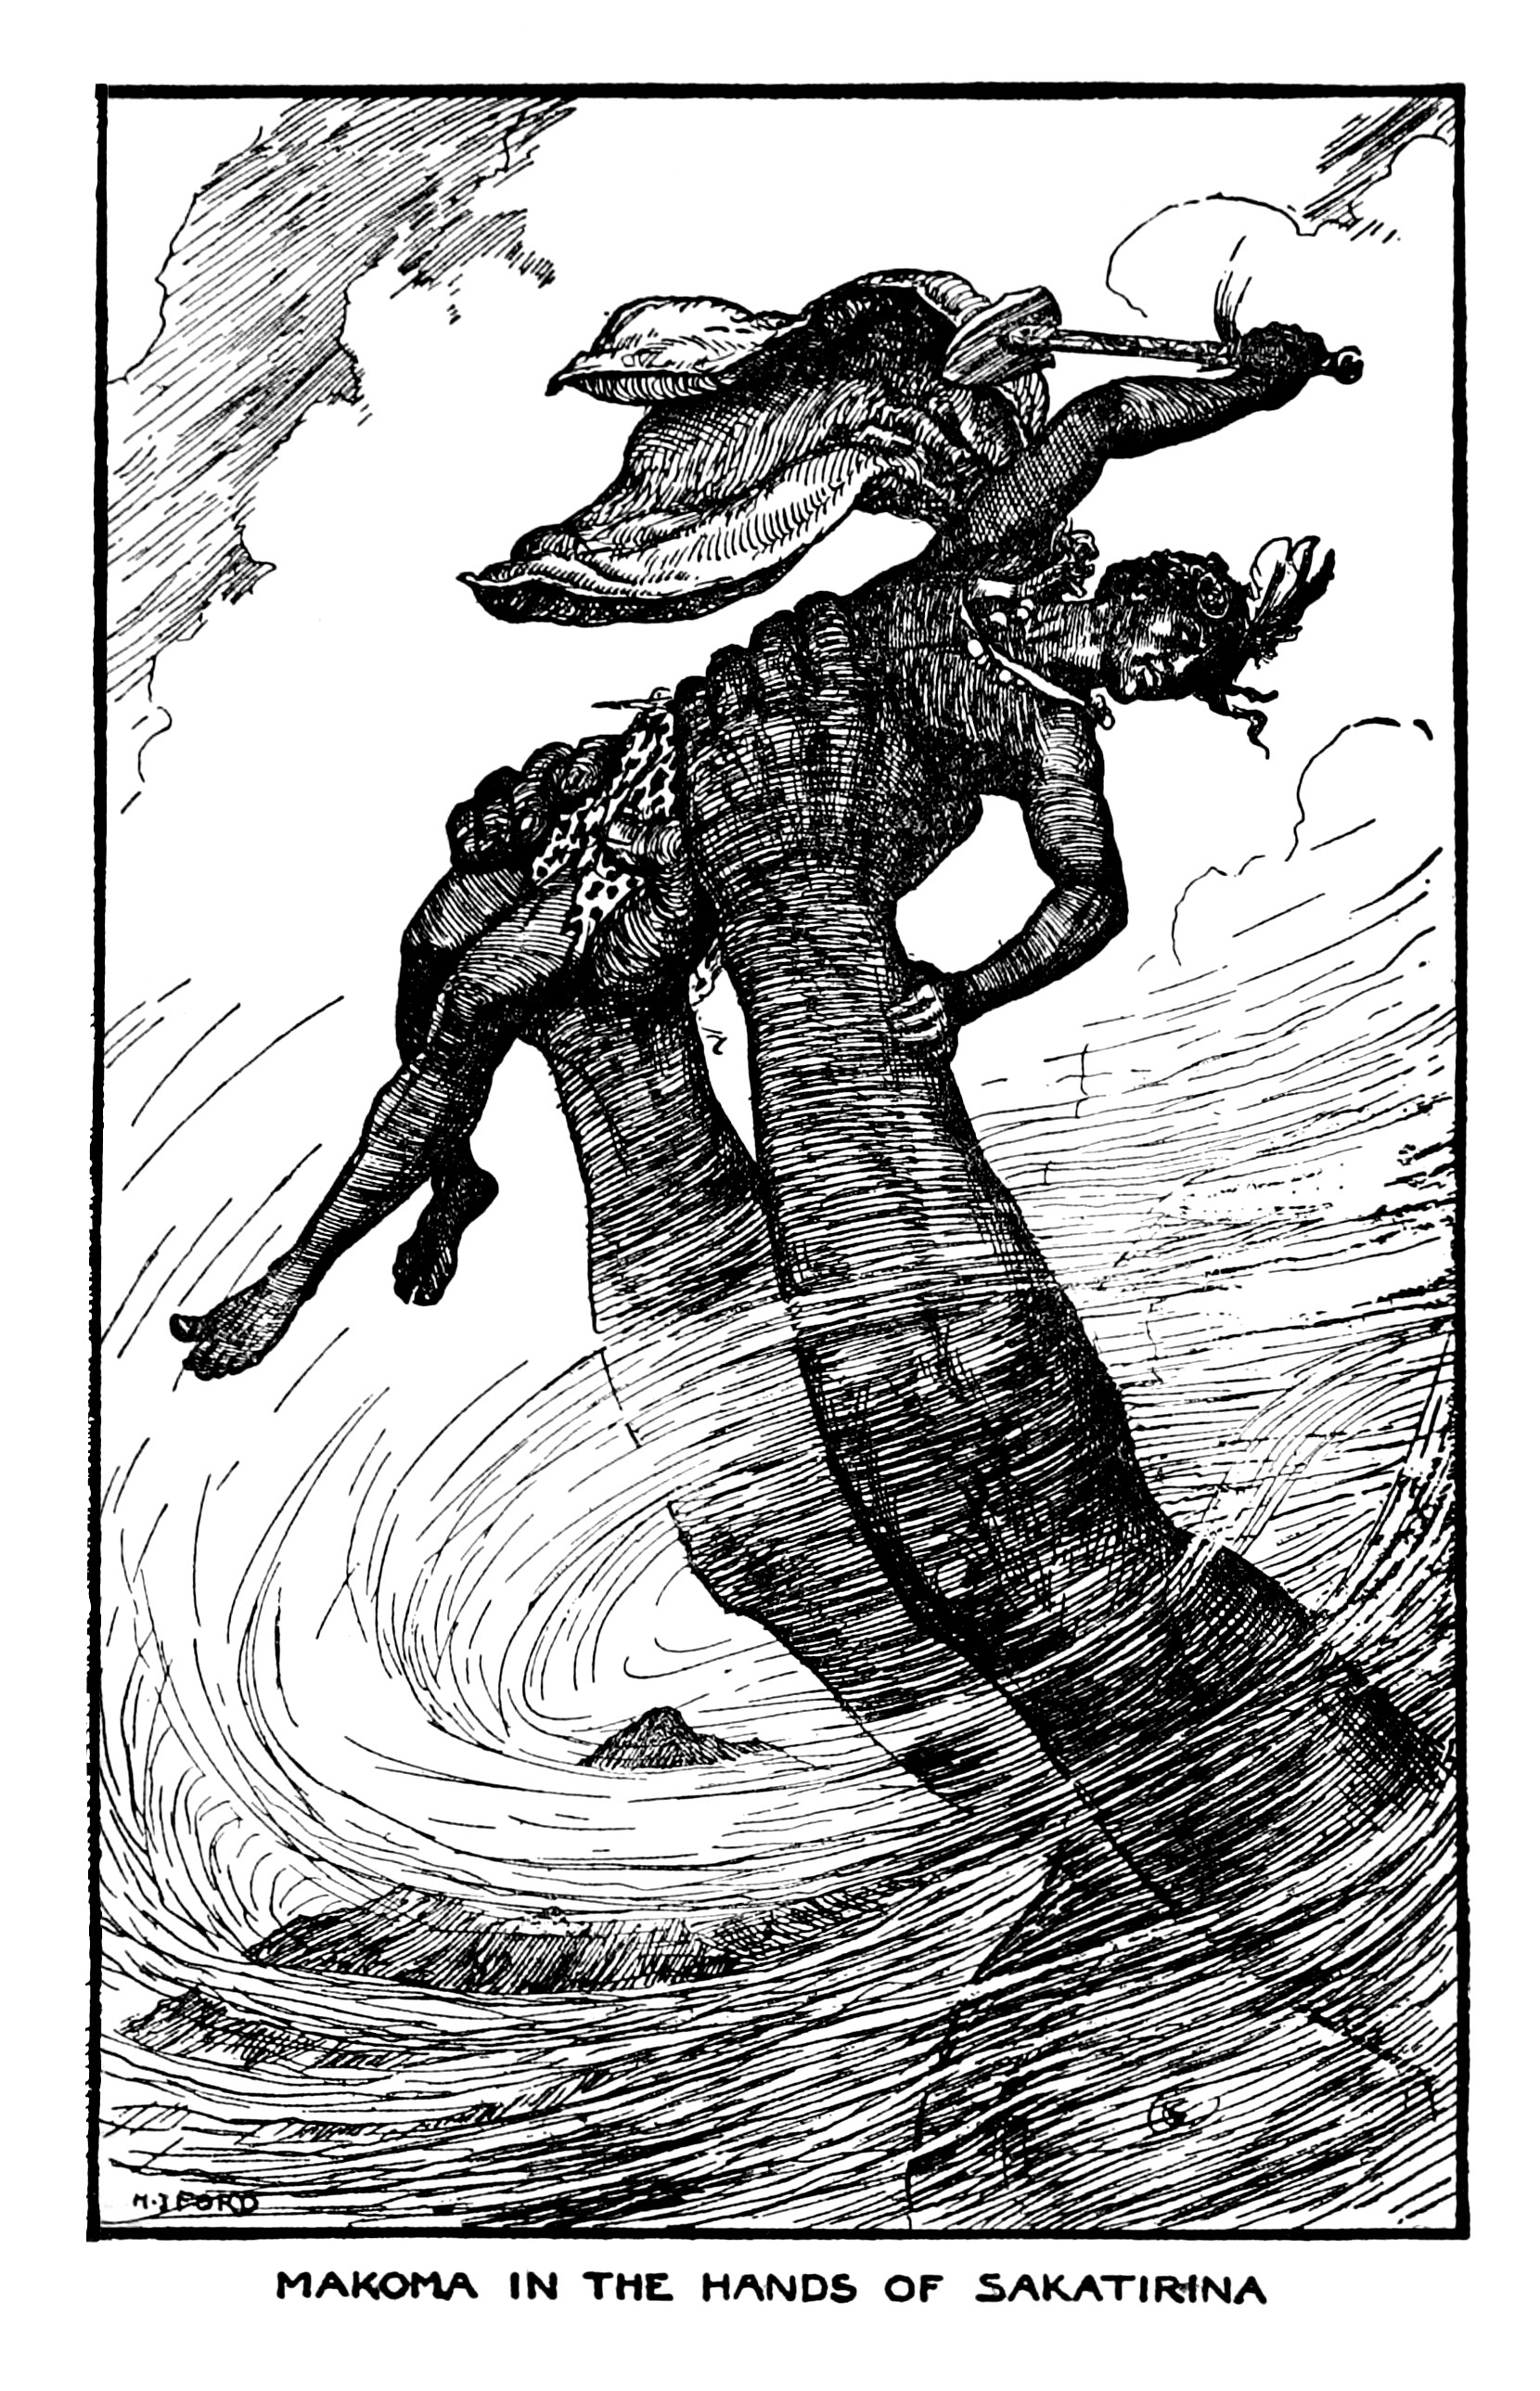 Henry Justice Ford - The orange fairy book edited by Andrew Lang , 1906 (illustration 4)